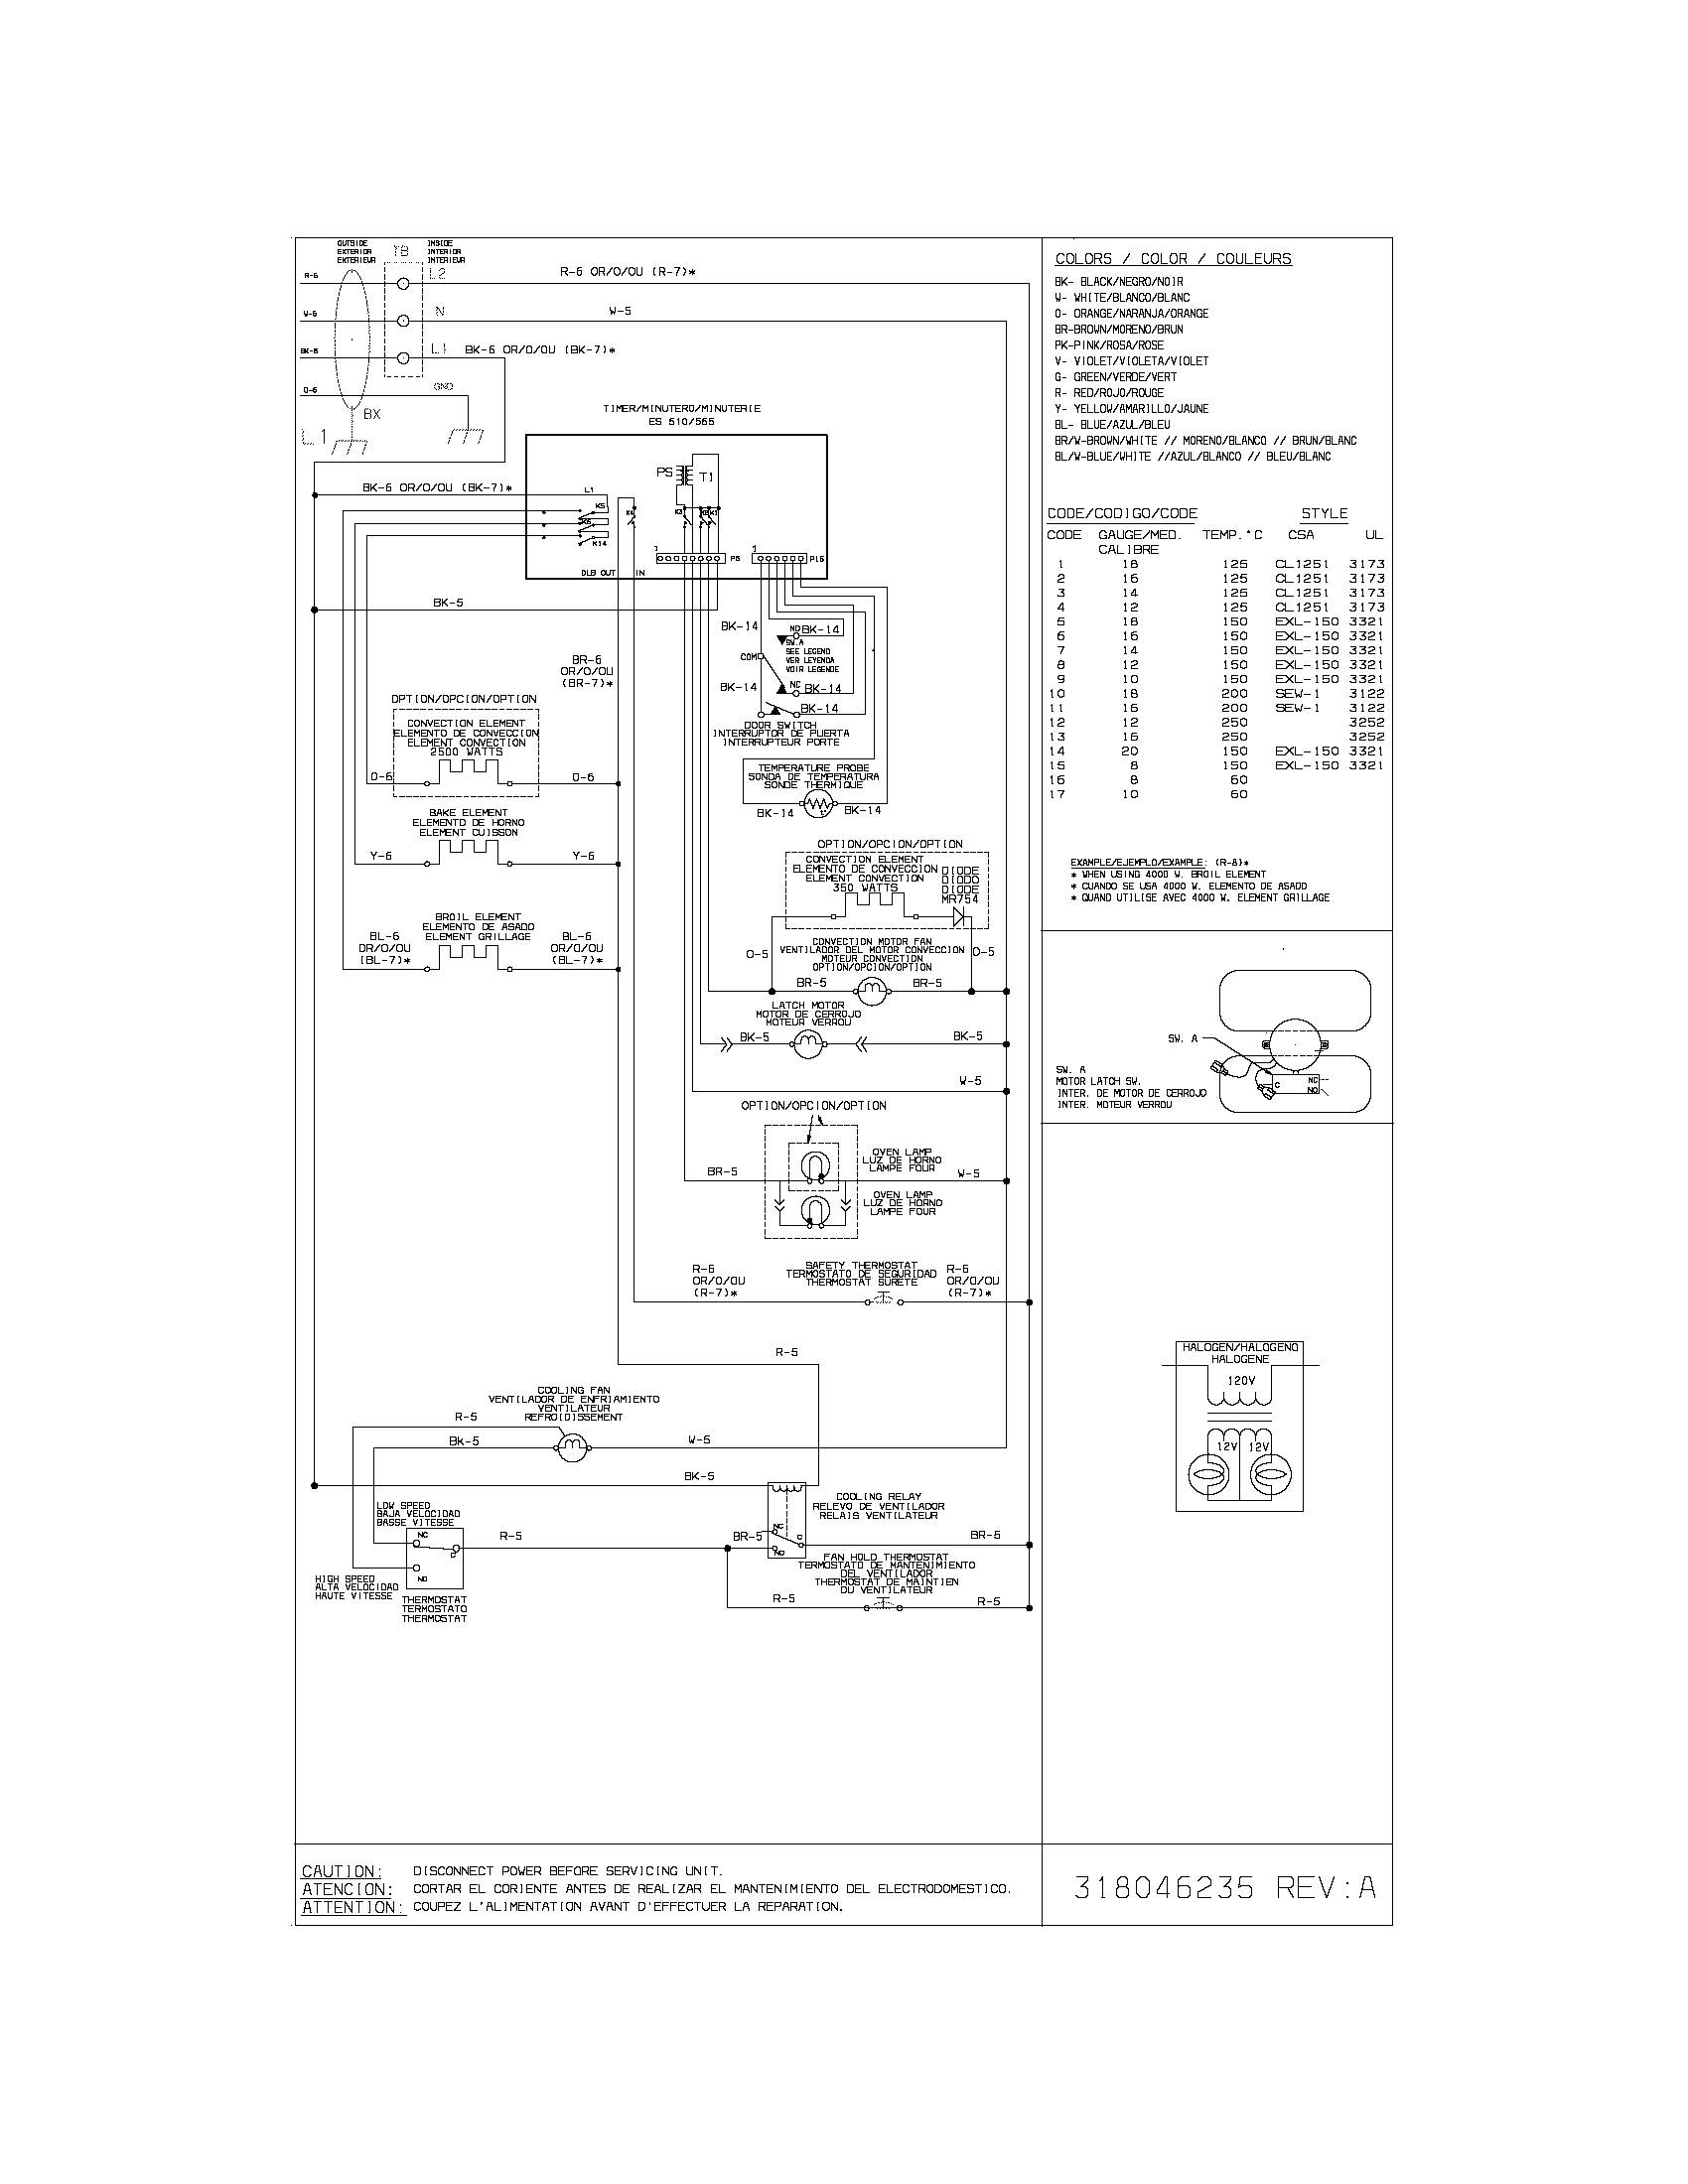 [DIAGRAM_38IS]  Frigidaire CPEB30S8CC2 Wall Oven Timer - Stove Clocks and Appliance Timers | Wiring Diagram For Electric Wall Clock |  | Appliance Timer and Stove Clock Repair and Replacement